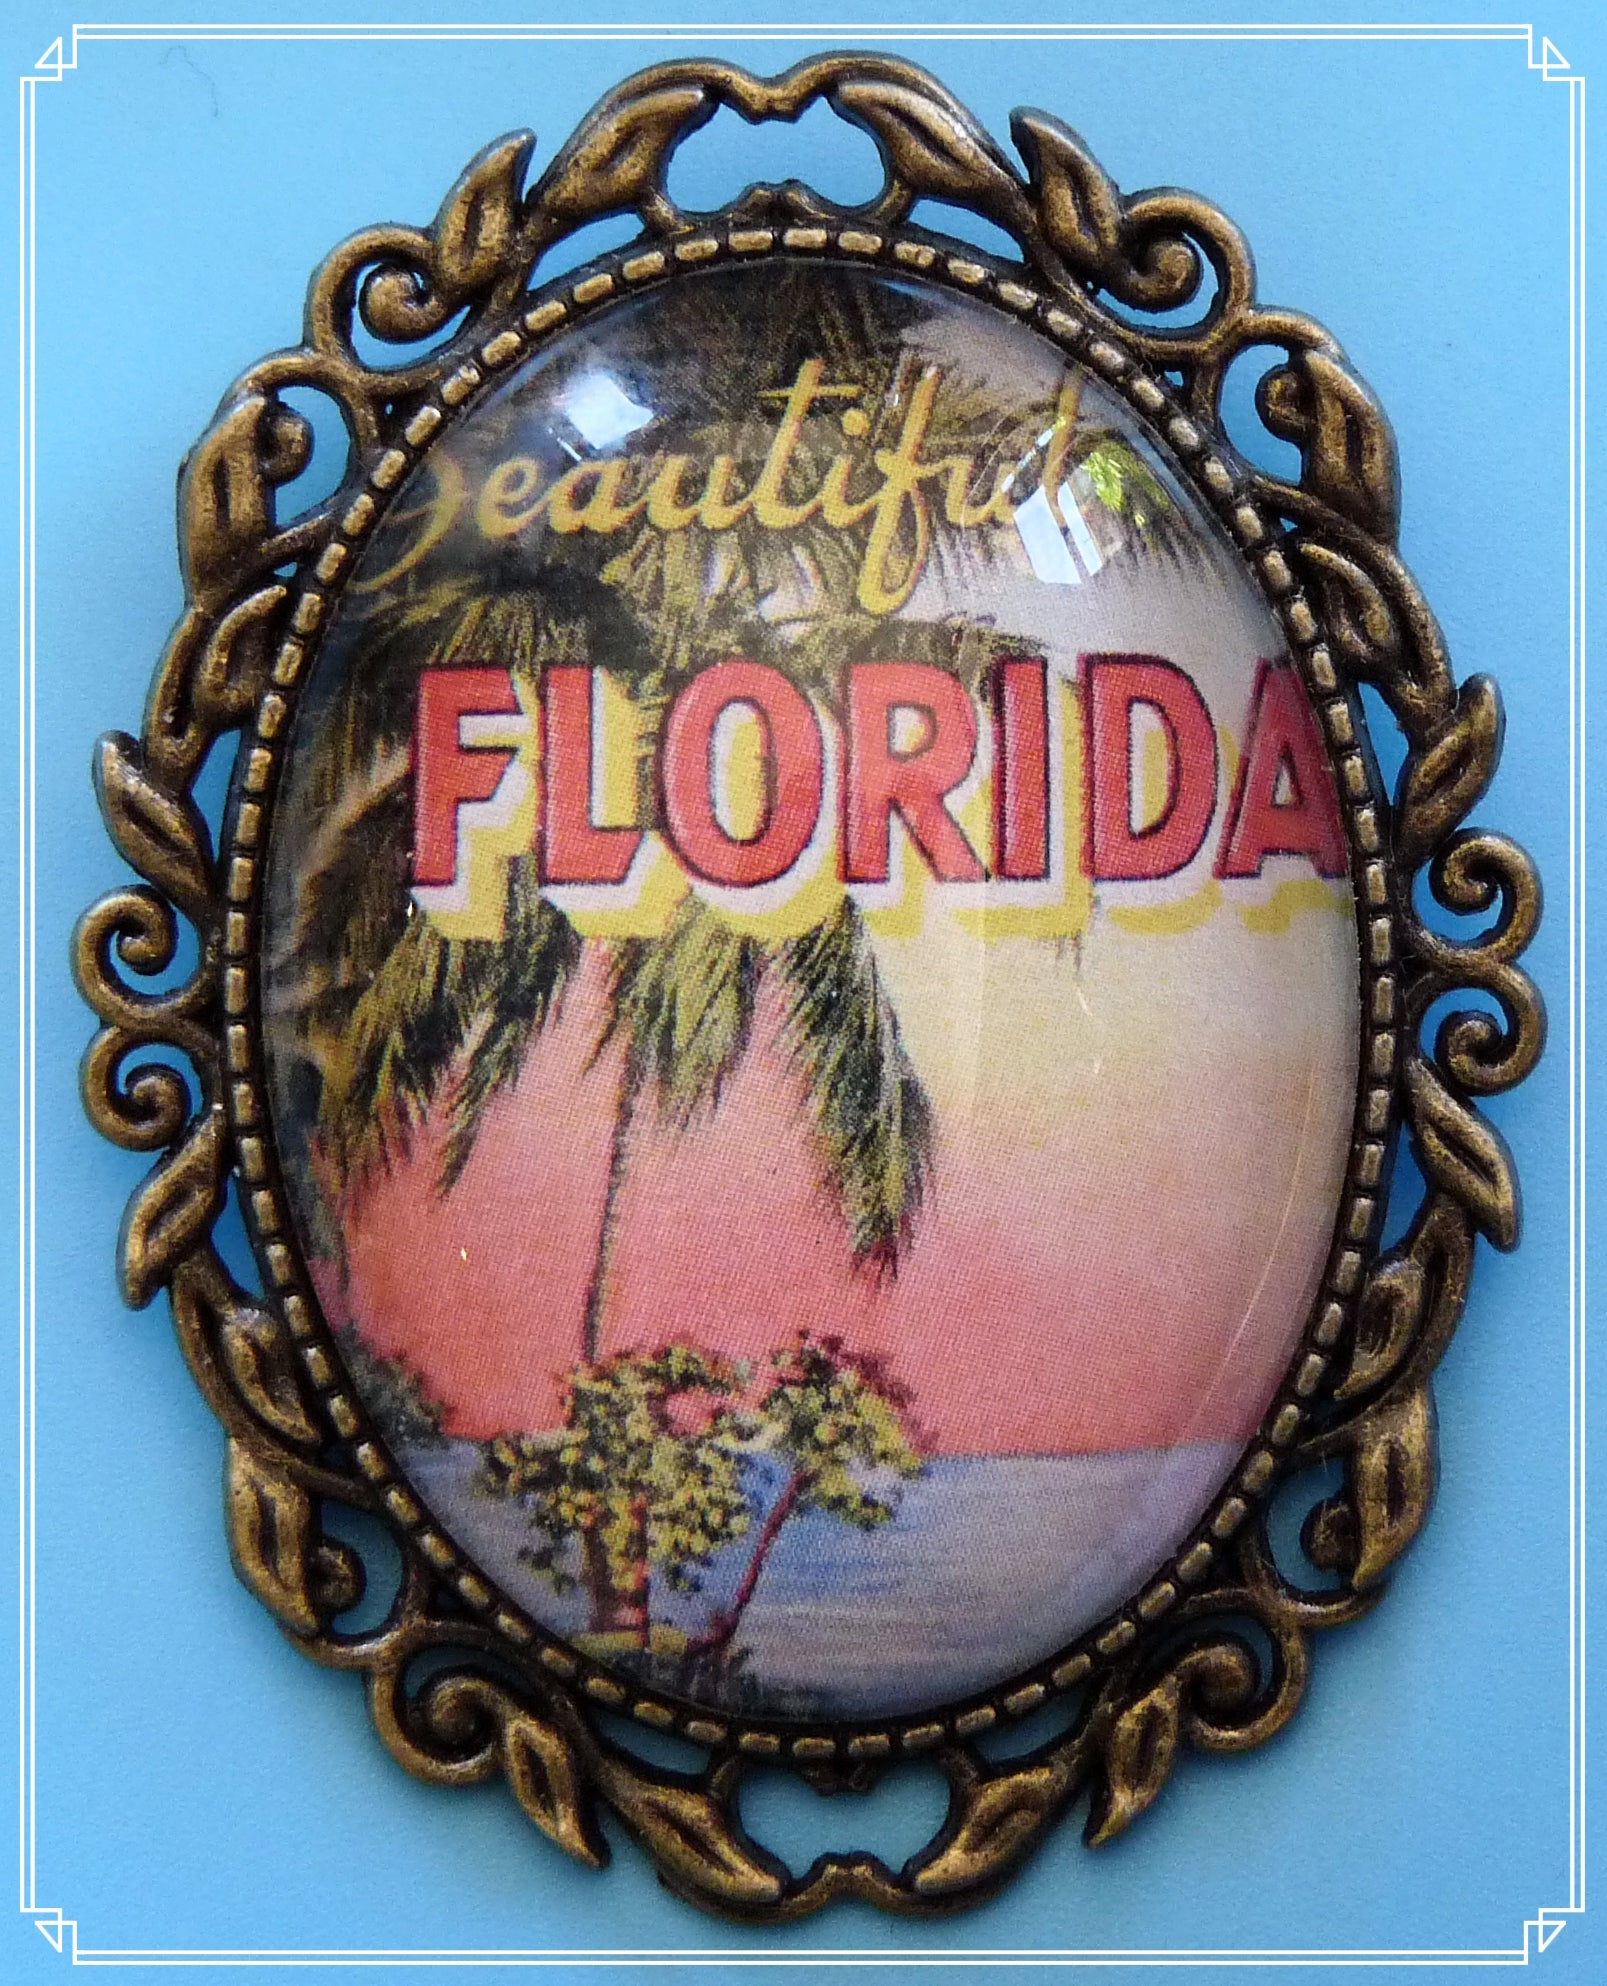 Summertime Memories - Beautiful Florida brooch